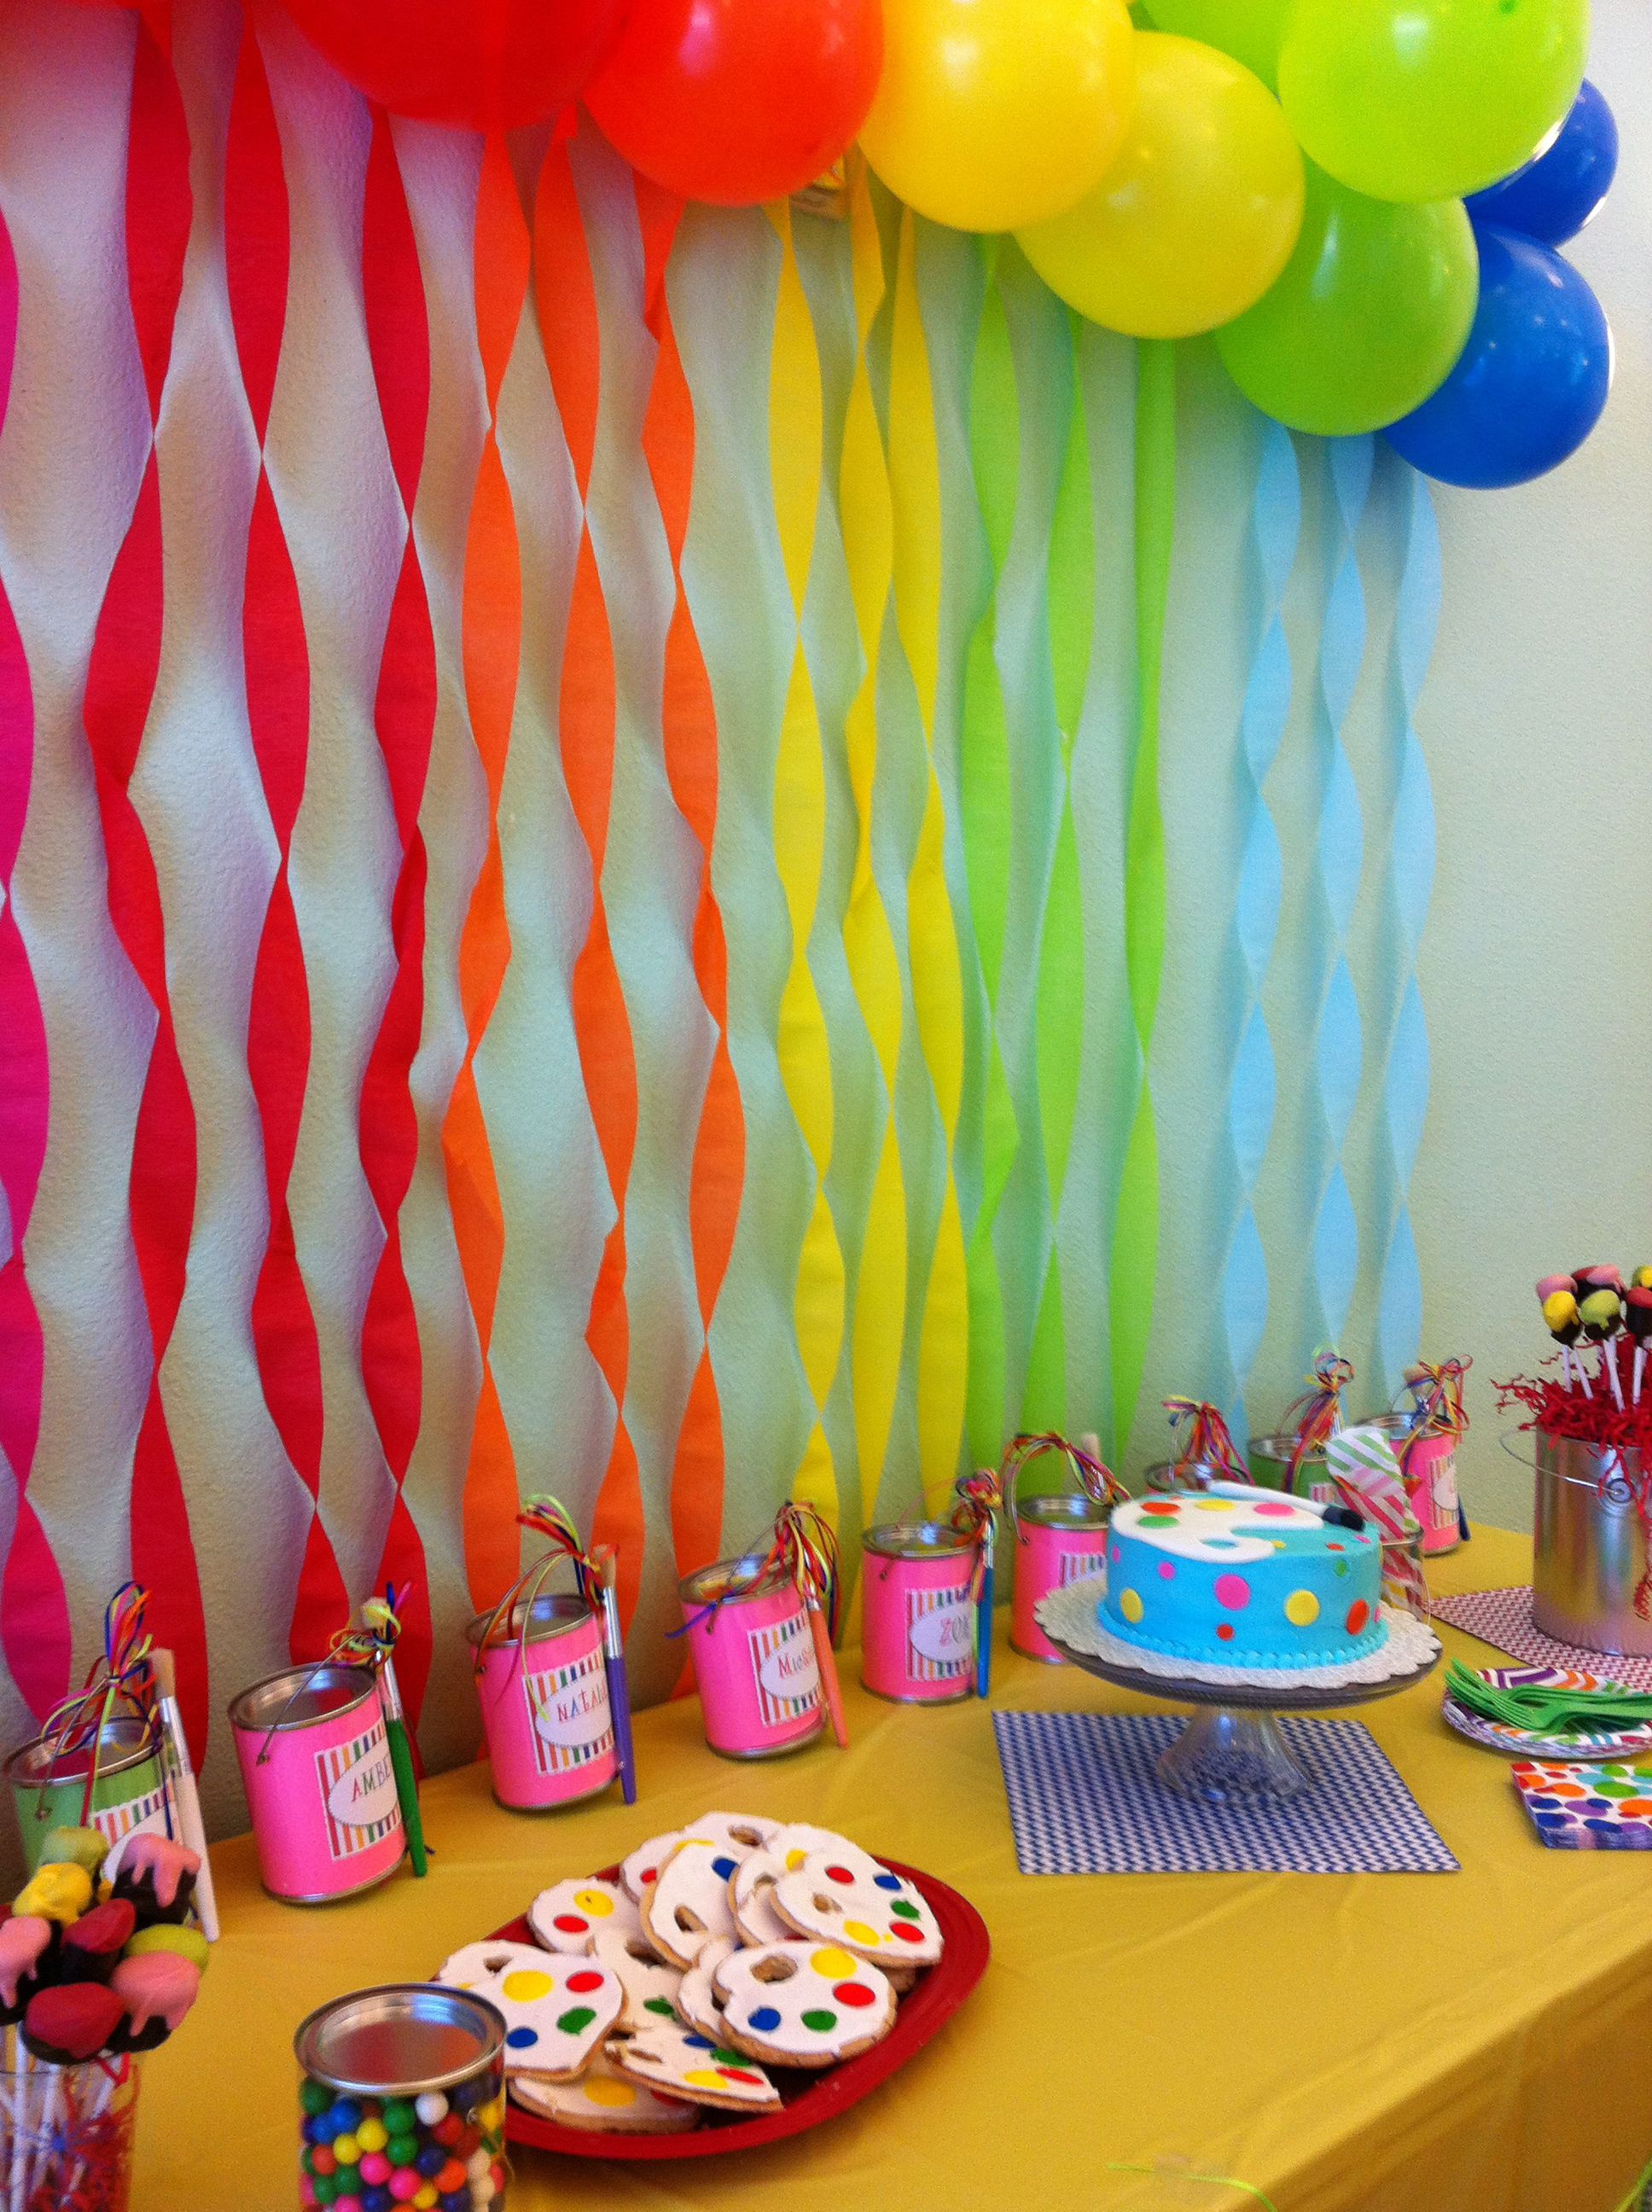 photo idea for birthday ; spectacular-idea-birthday-party-game-ideas-for-7-year-old-boy-most-at-home-8-girl-art